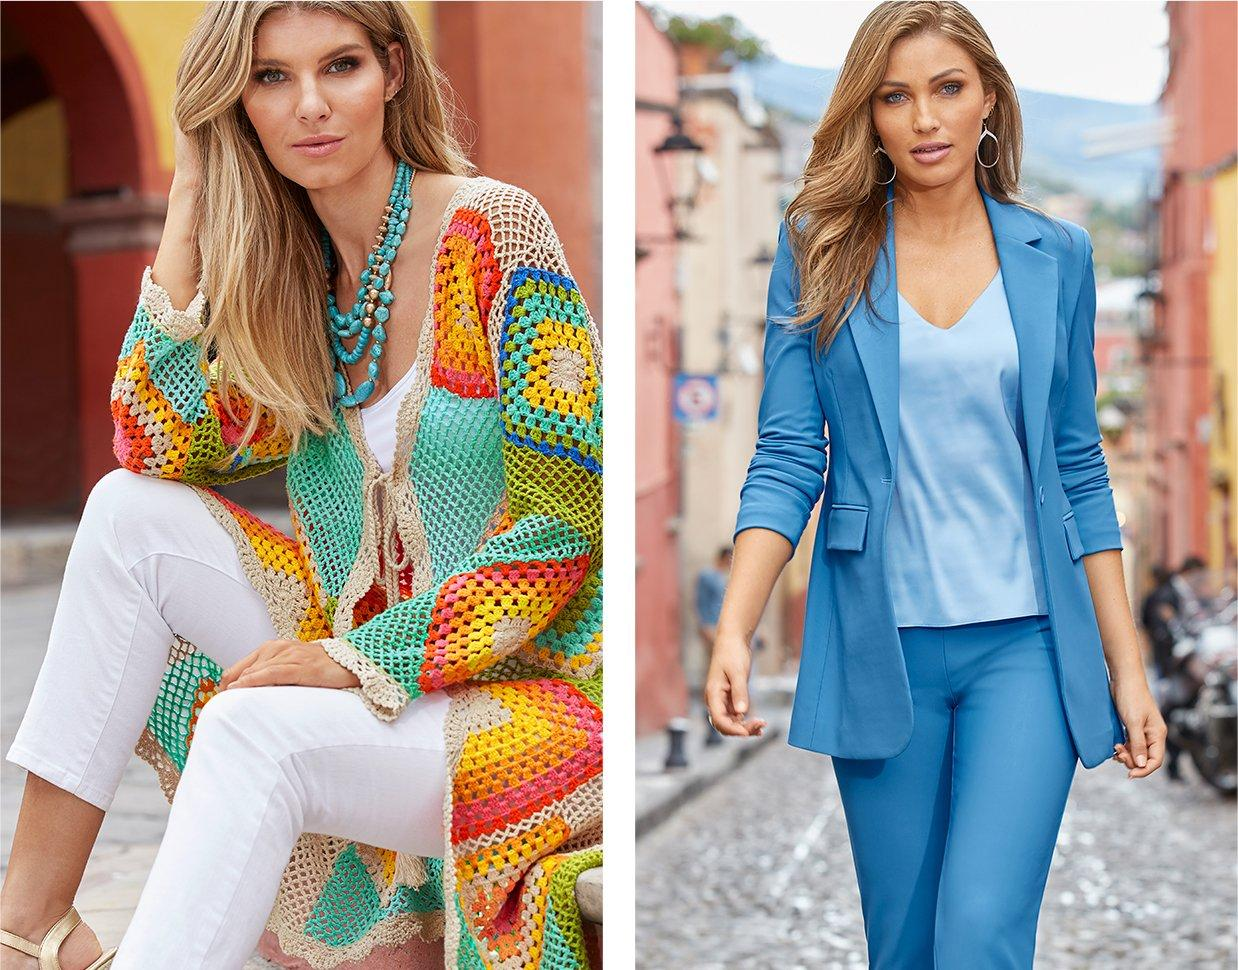 left model wearing a multicolored crochet duster, white tank top, white pants, and turquoise statement necklace. right model wearing a blue boyfriend blazer, blue pants, and a blue v-neck tank top.